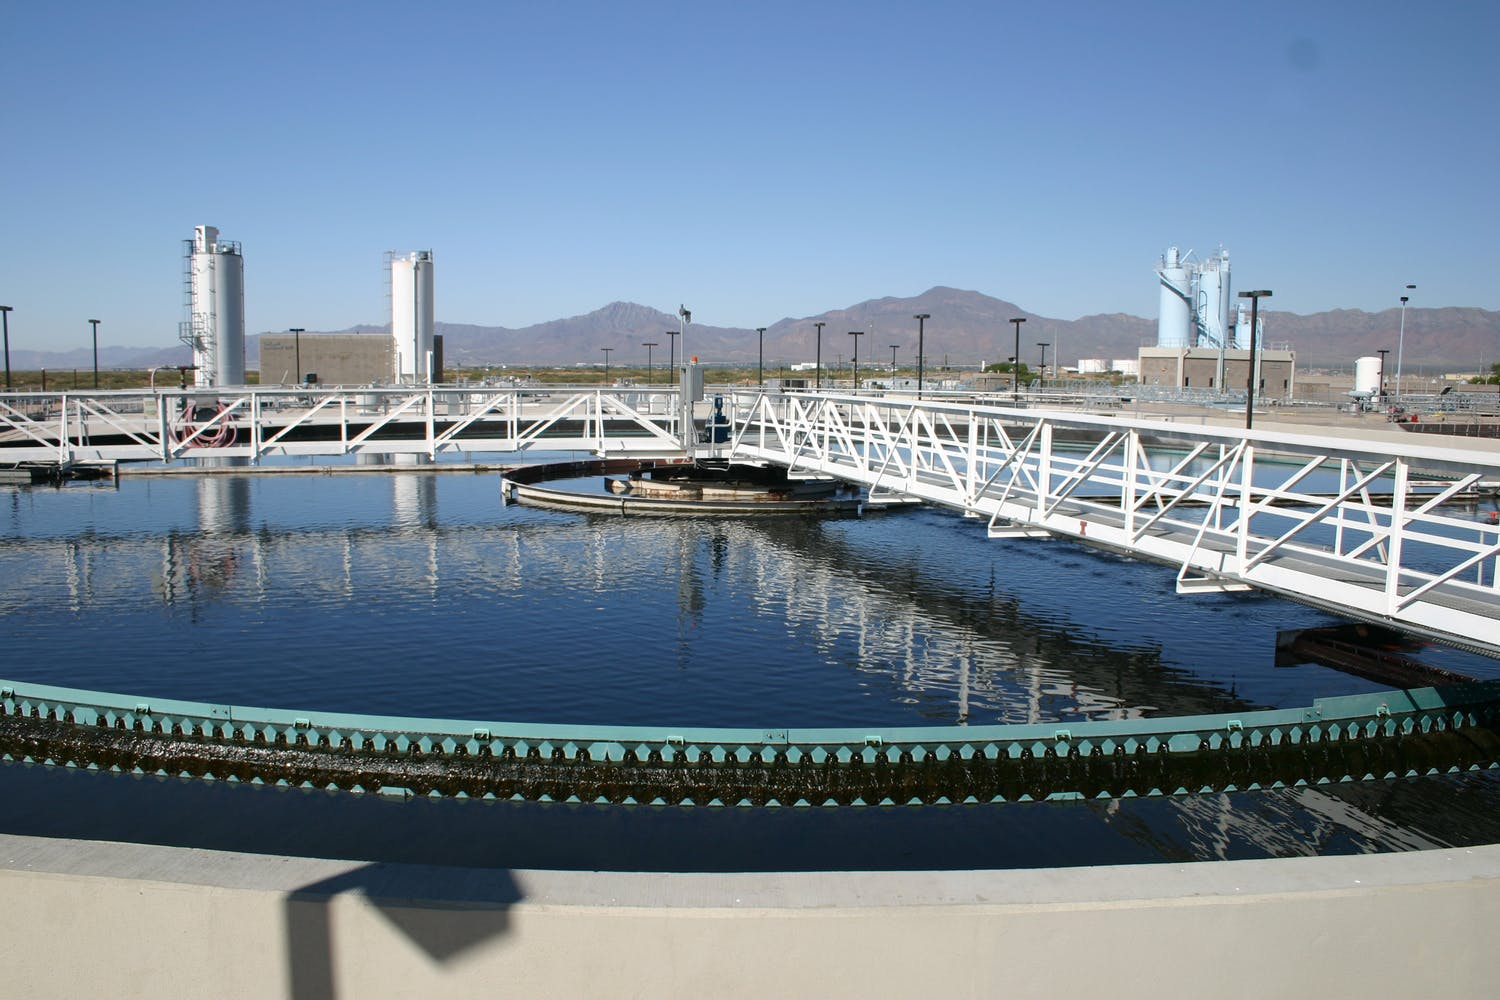 Water Wednesday - Putting Wastewater into Perspective